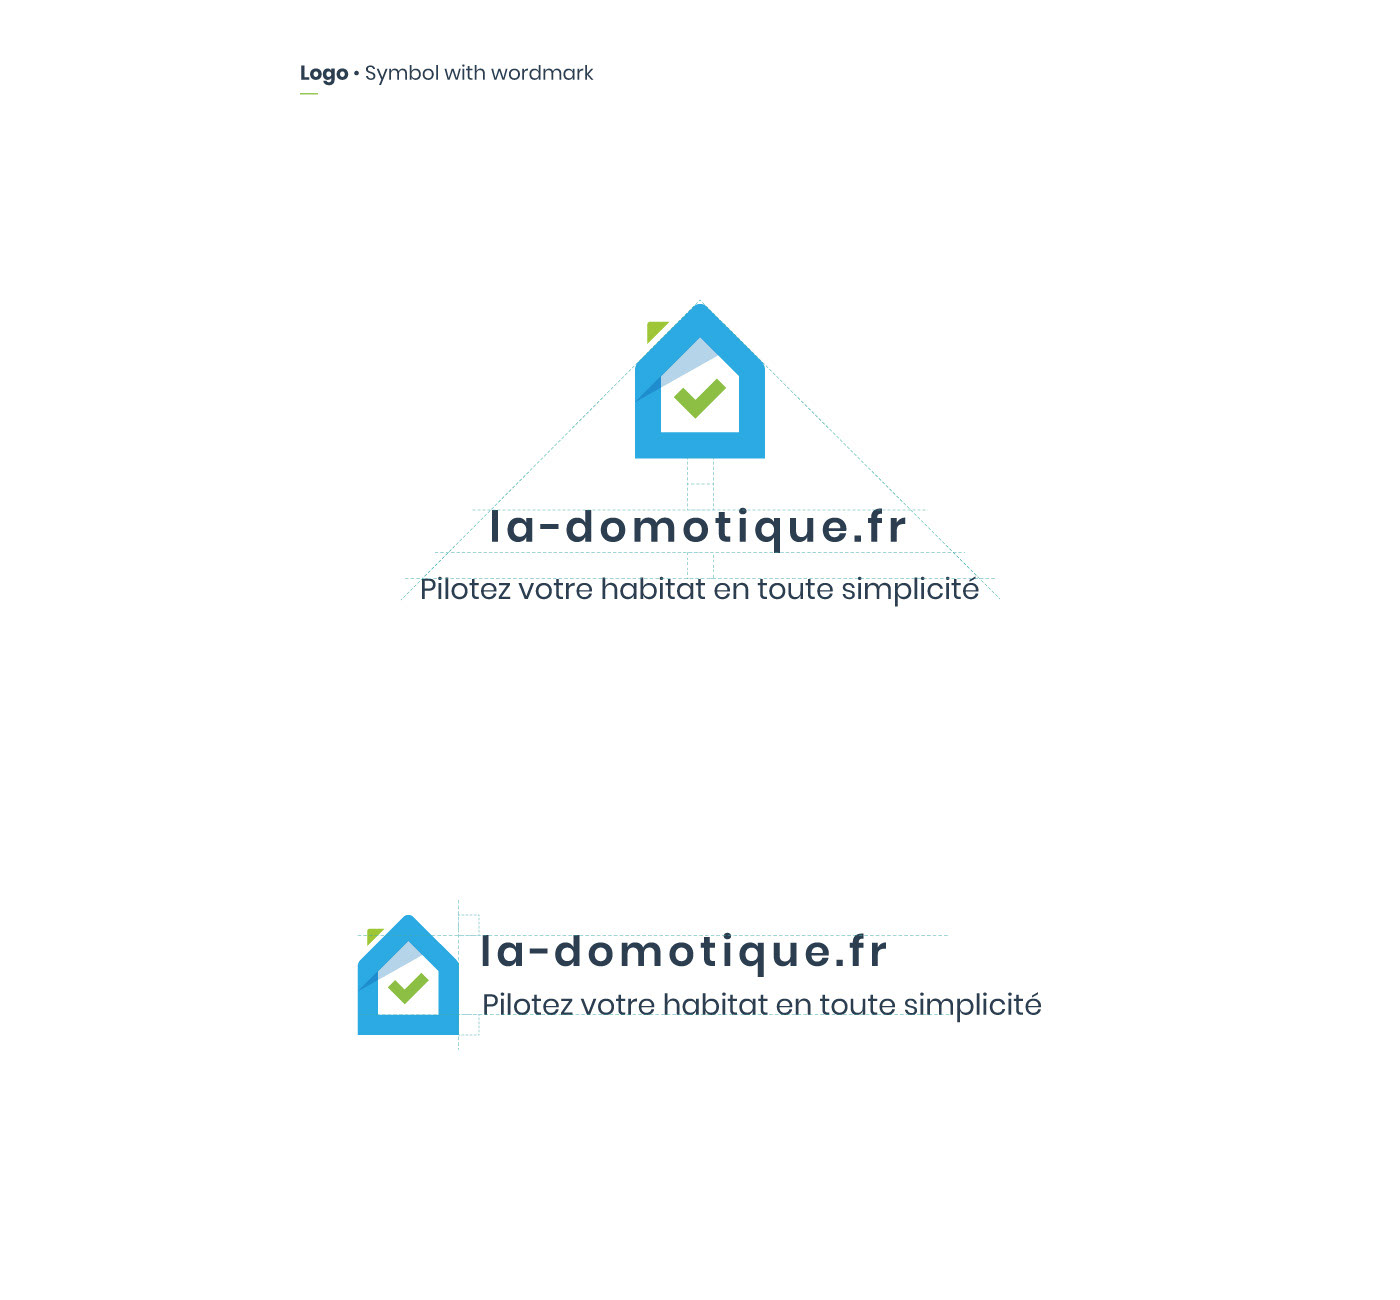 Smarthome logo with text and symbol